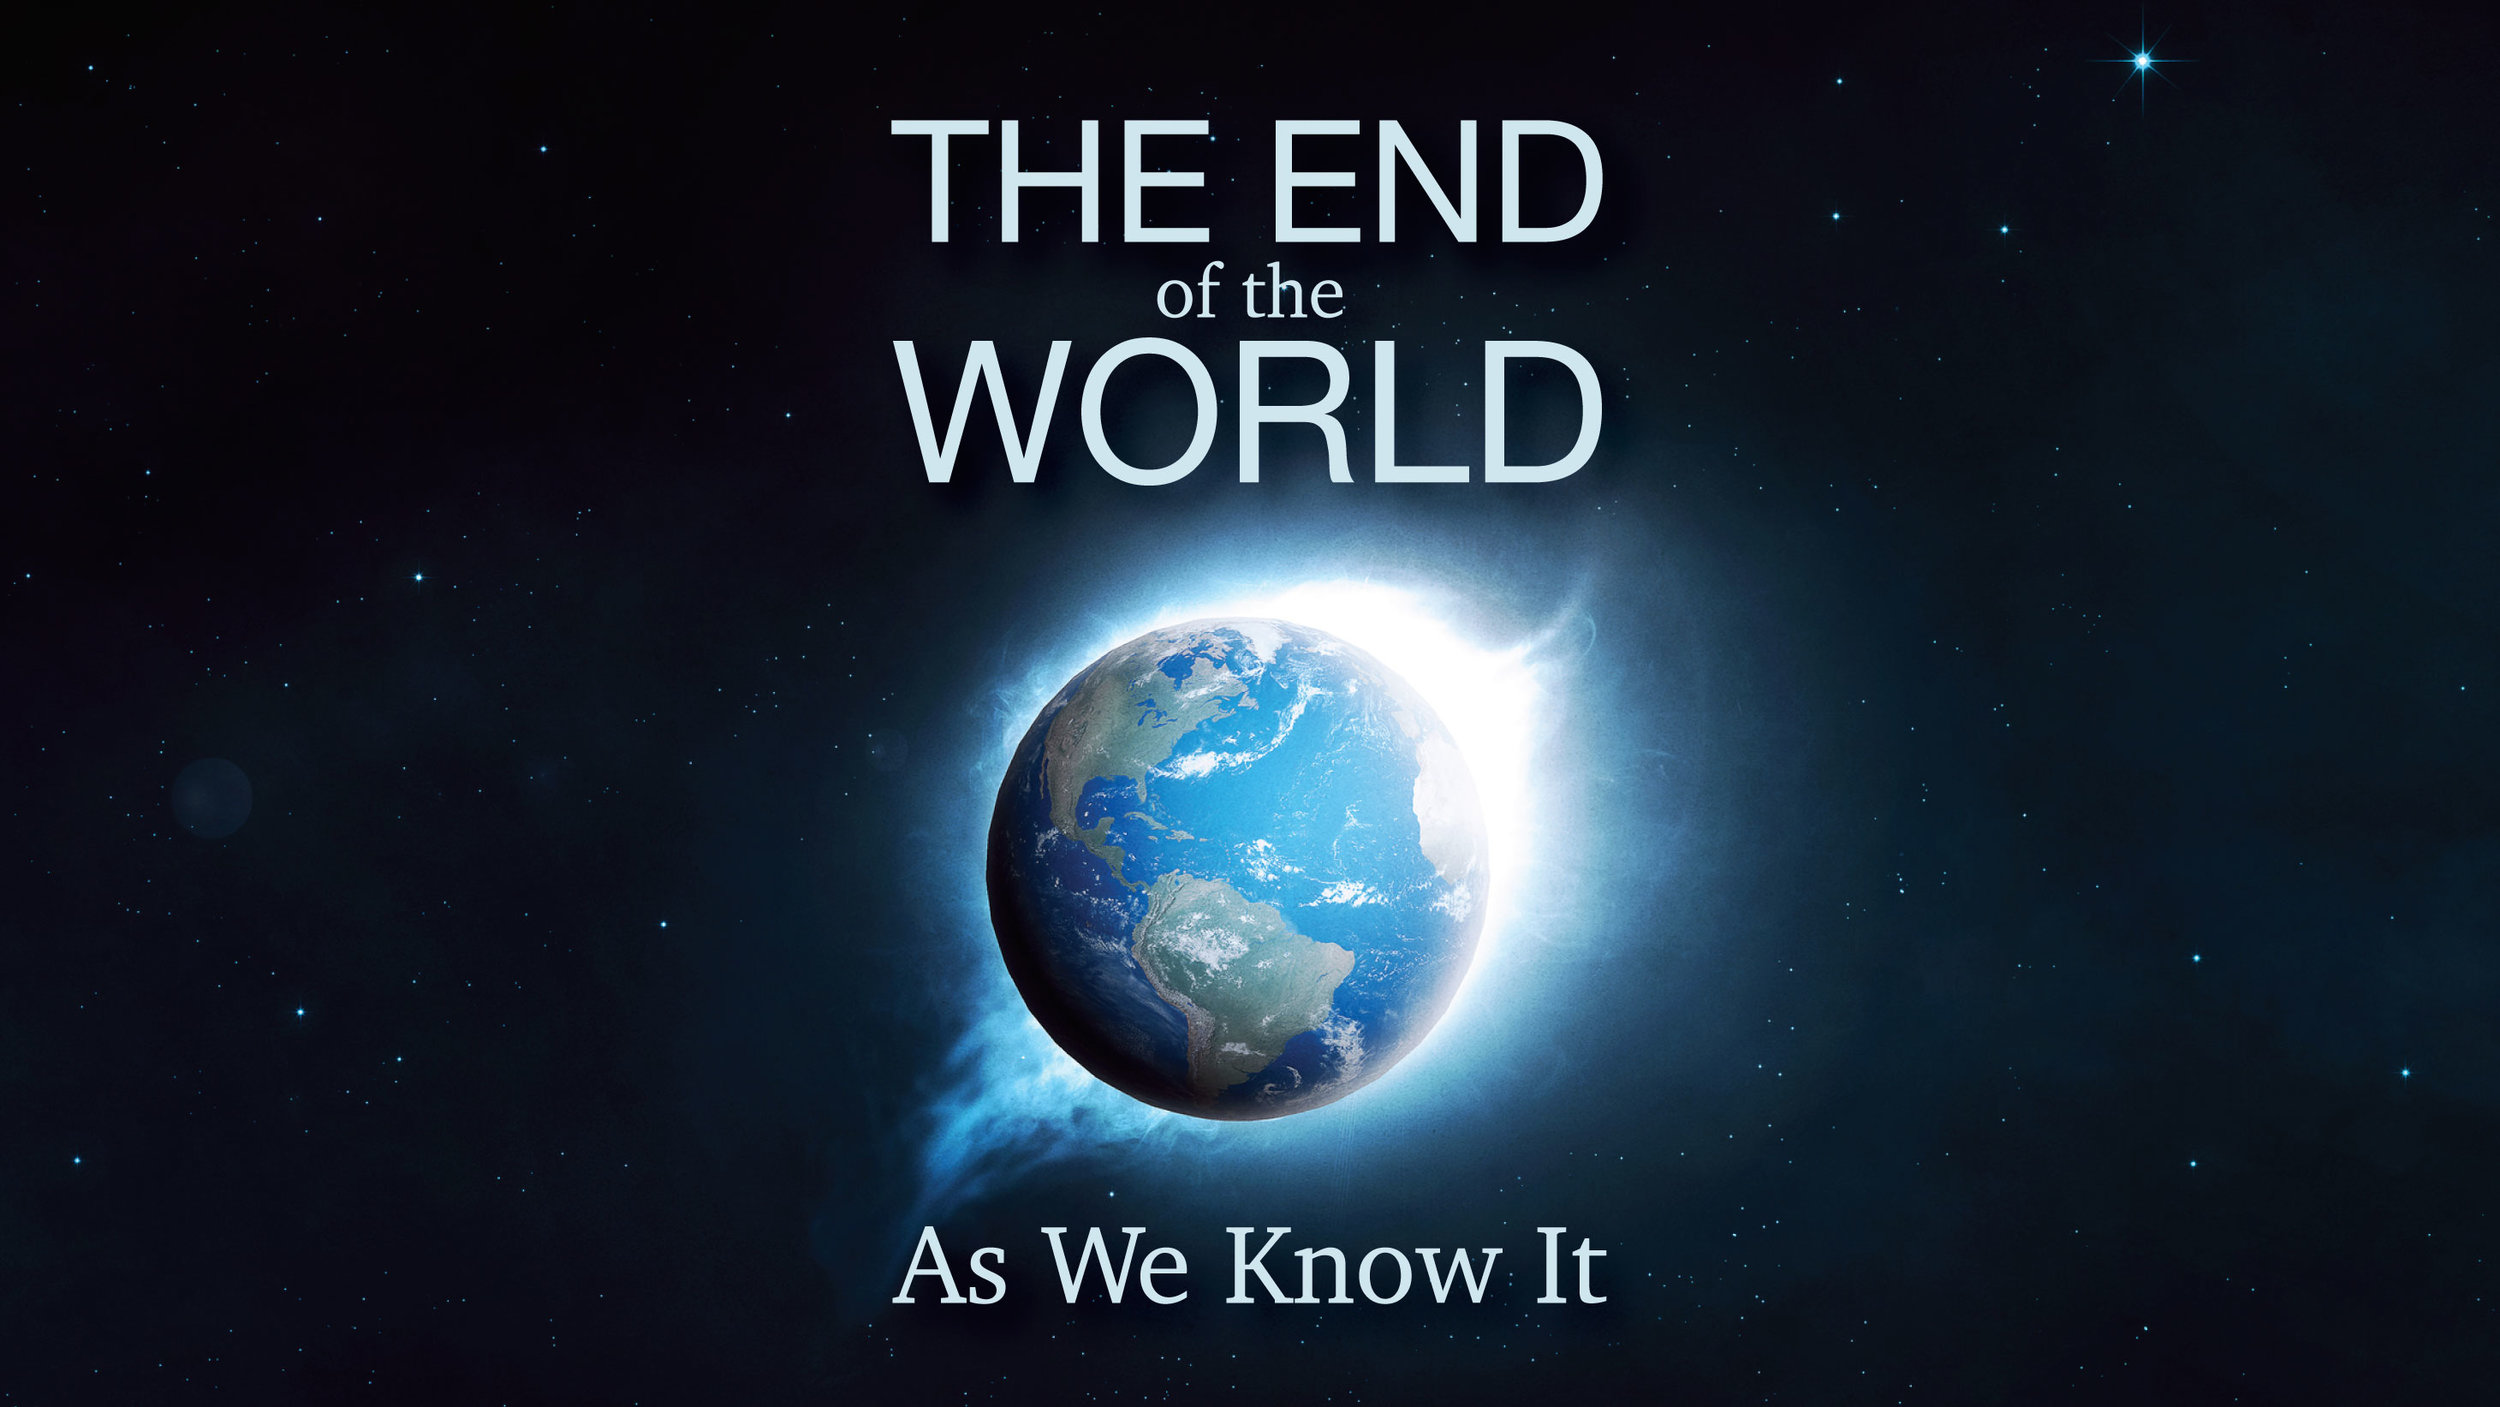 The-End-Of-The-World-As-We-Know-It.jpg